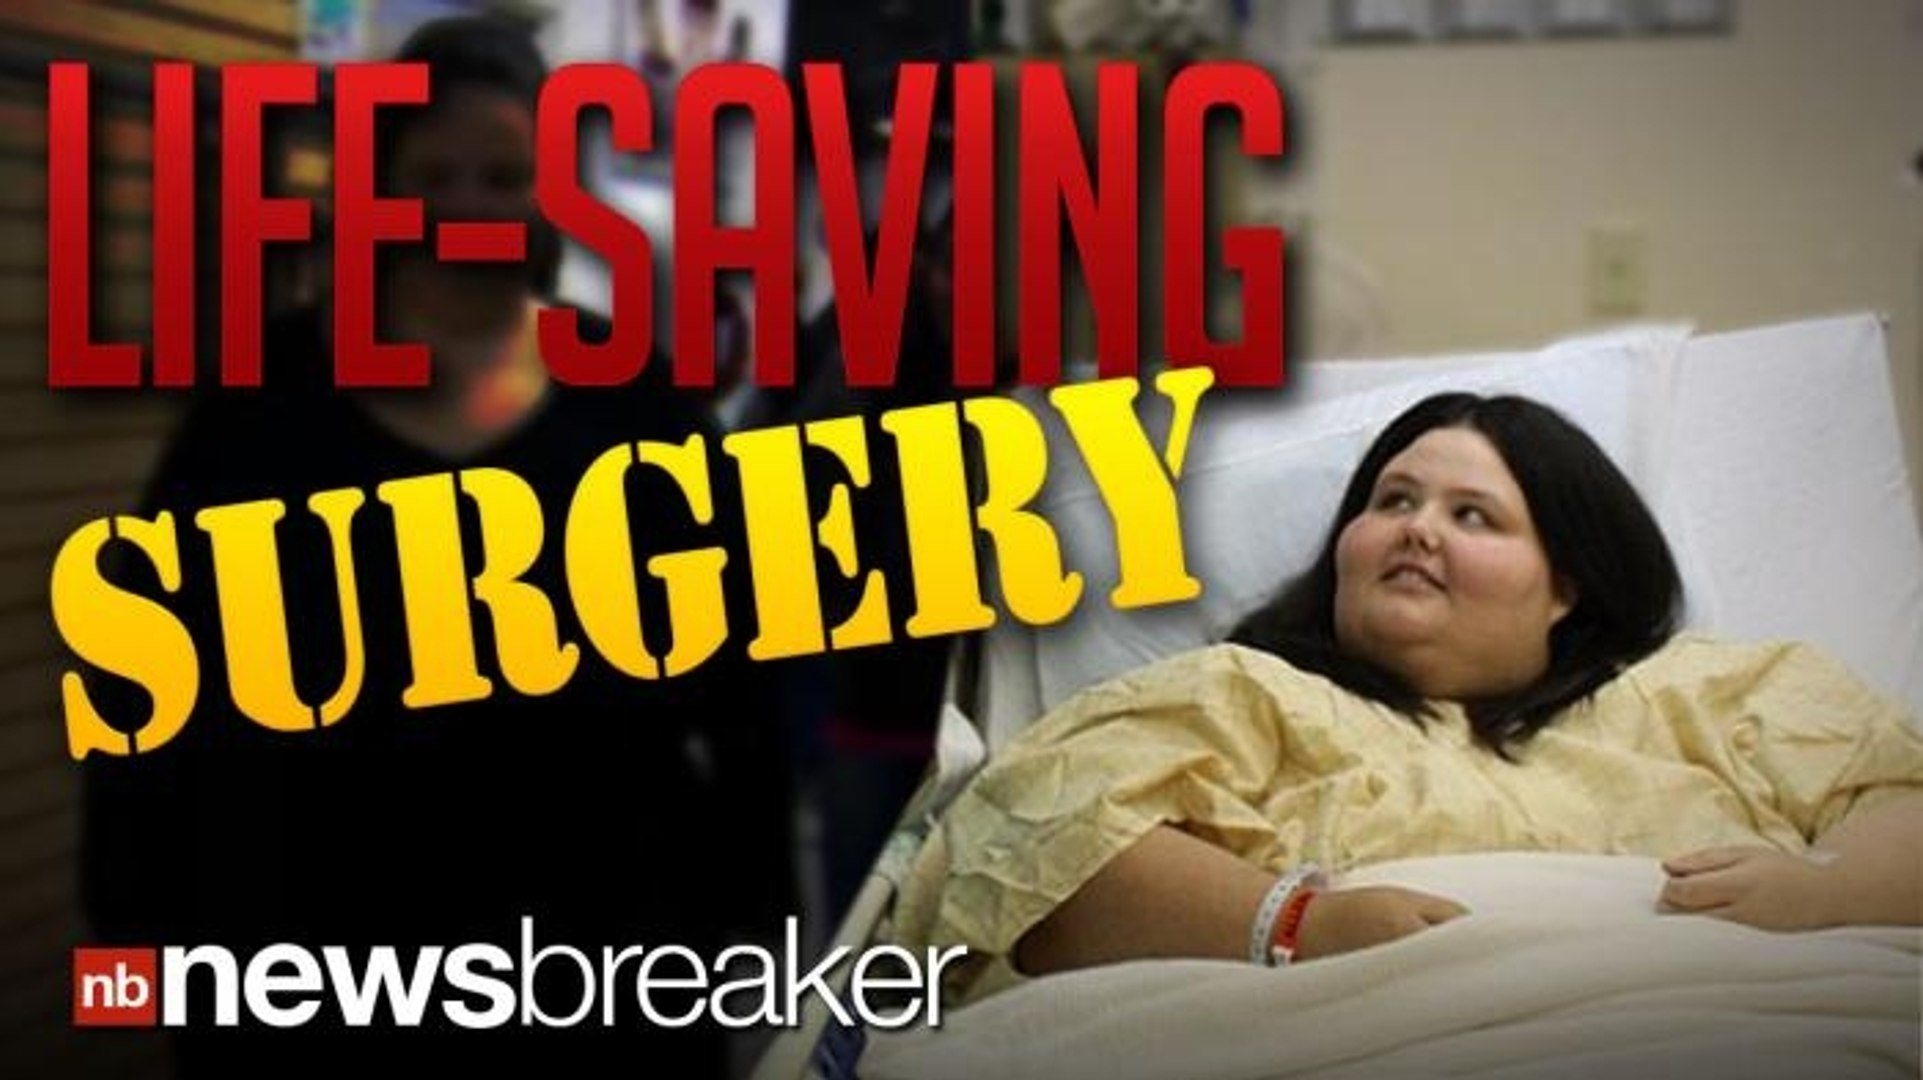 LIFE SAVING SURGERY: Obese Woman Given Five Years to Live Turns Life Around with Gastric Bypass Proc